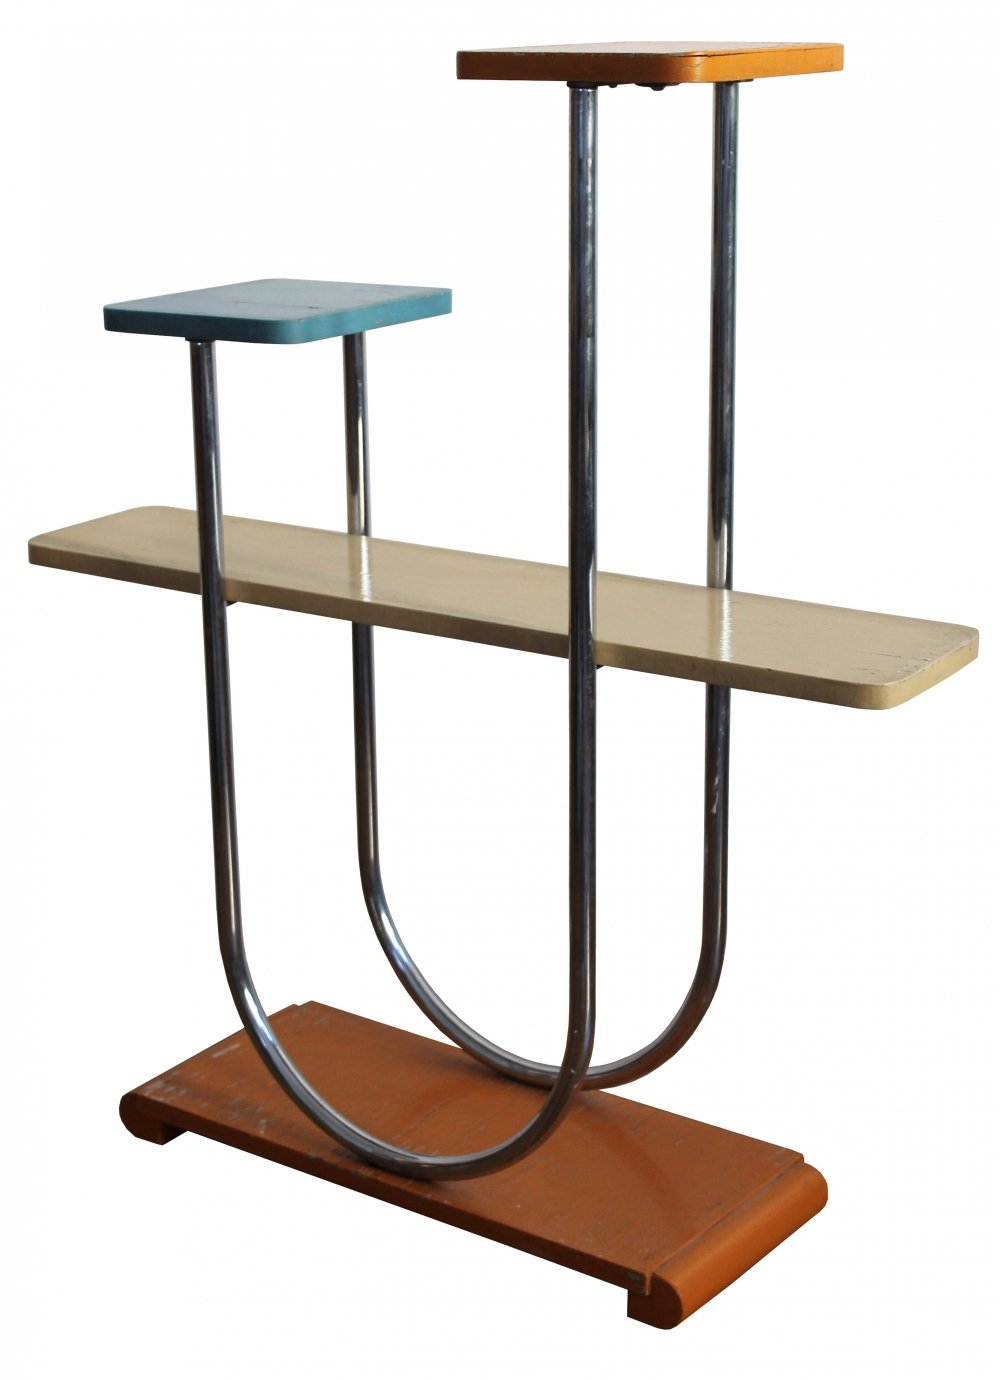 B-4 Modernist Flower Stand by Slezak, 1930